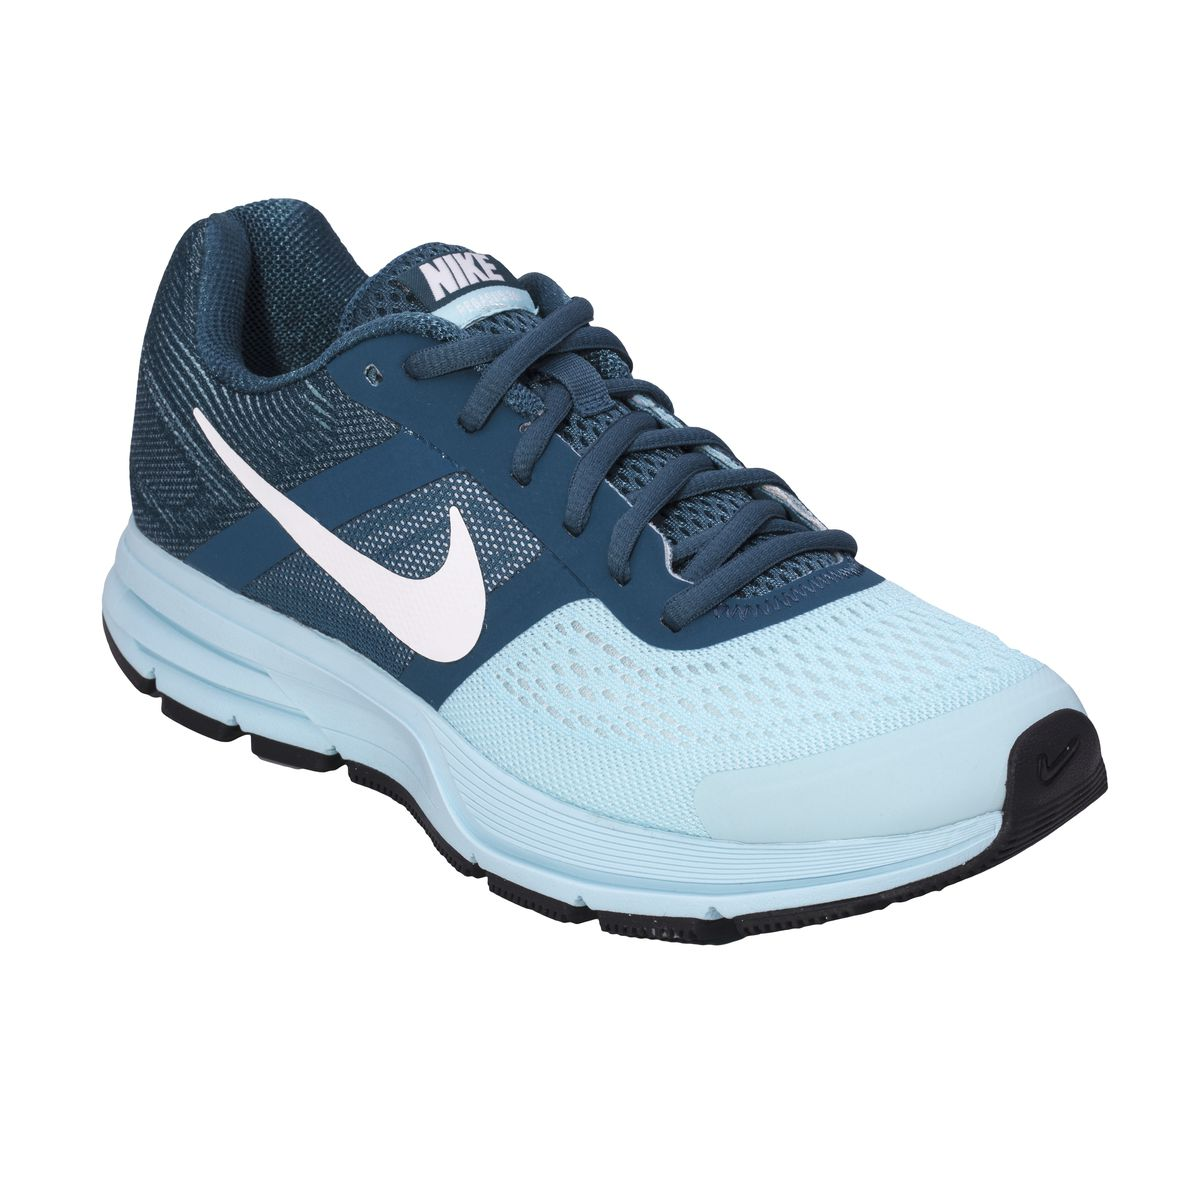 Where To Buy Nike Running Shoes In South Africa 39